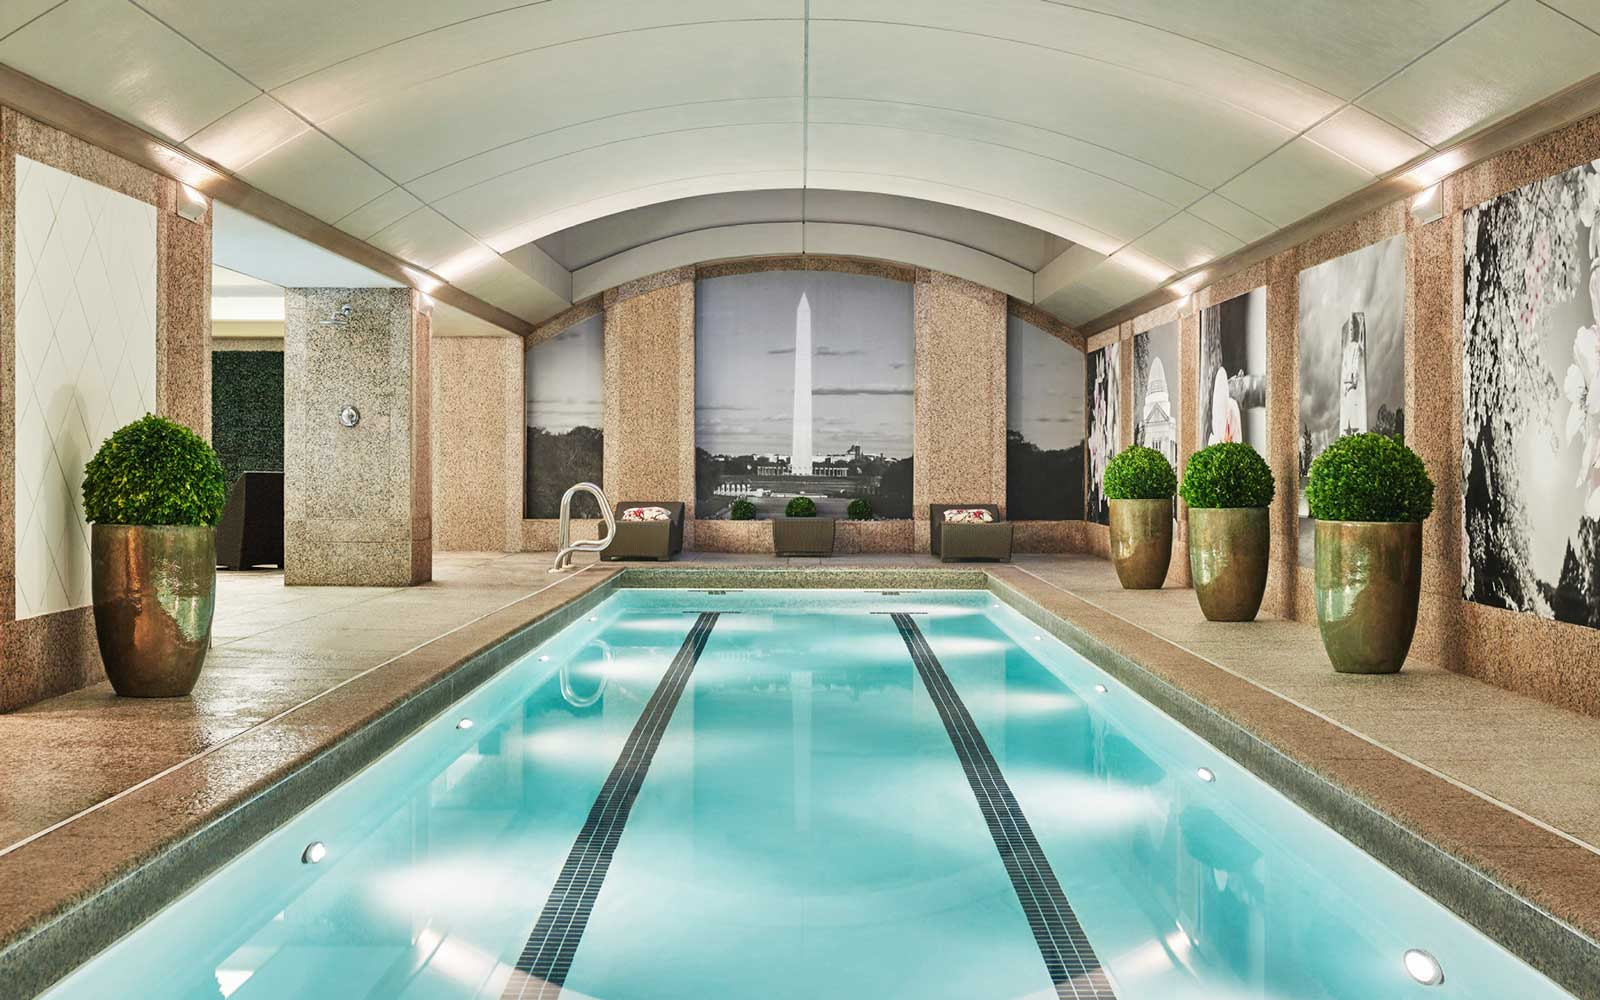 Pool at the Four Seasons hotel in washington dc